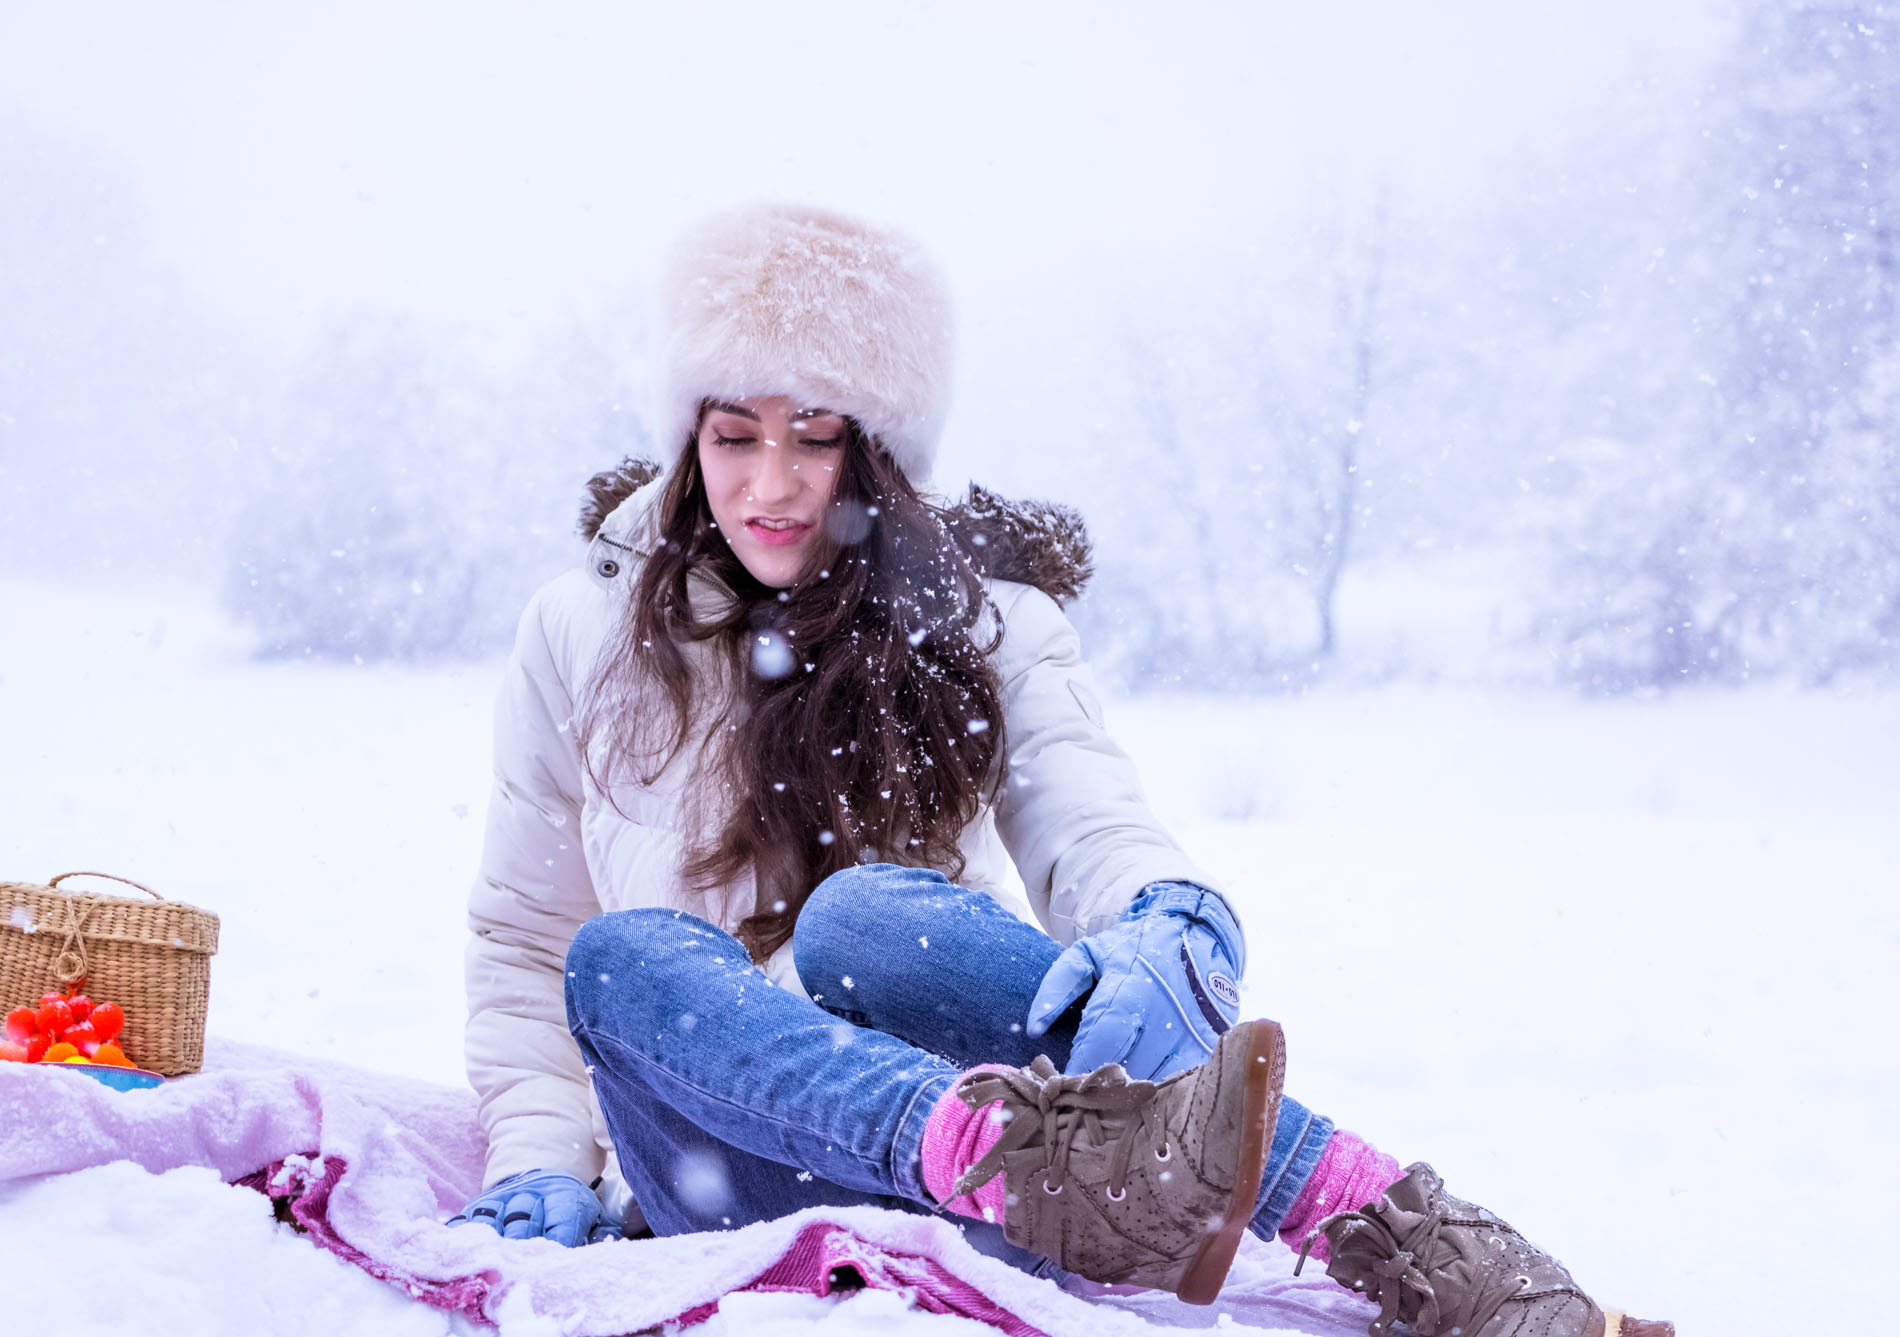 Fashion Blogger Veronika Lipar of Brunette from Wall Street wearing white down puffer jacket, blue jeans, blue snow gloves, white faux fur hat, pink wool socks and Isabel Marant Bobby sneakers, sitting on a pink picnic blanket in the snow